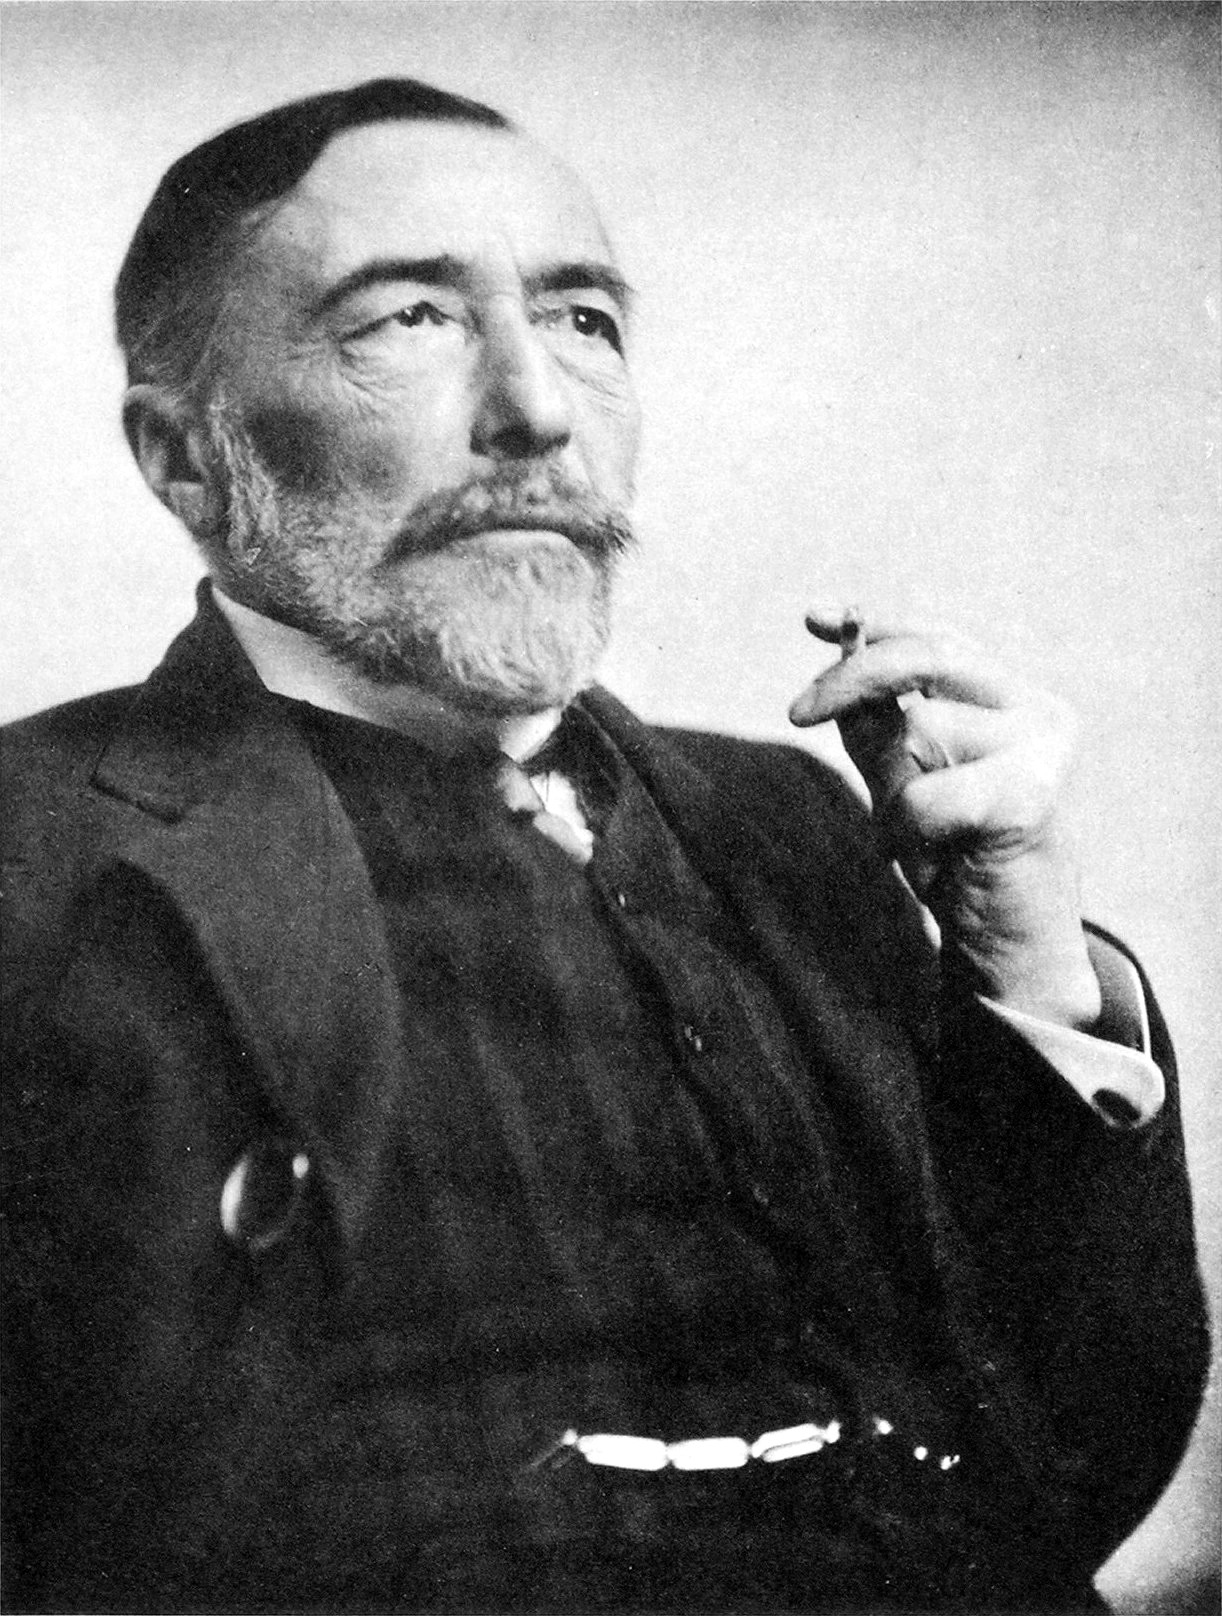 Photograph of Joseph Conrad in 1916